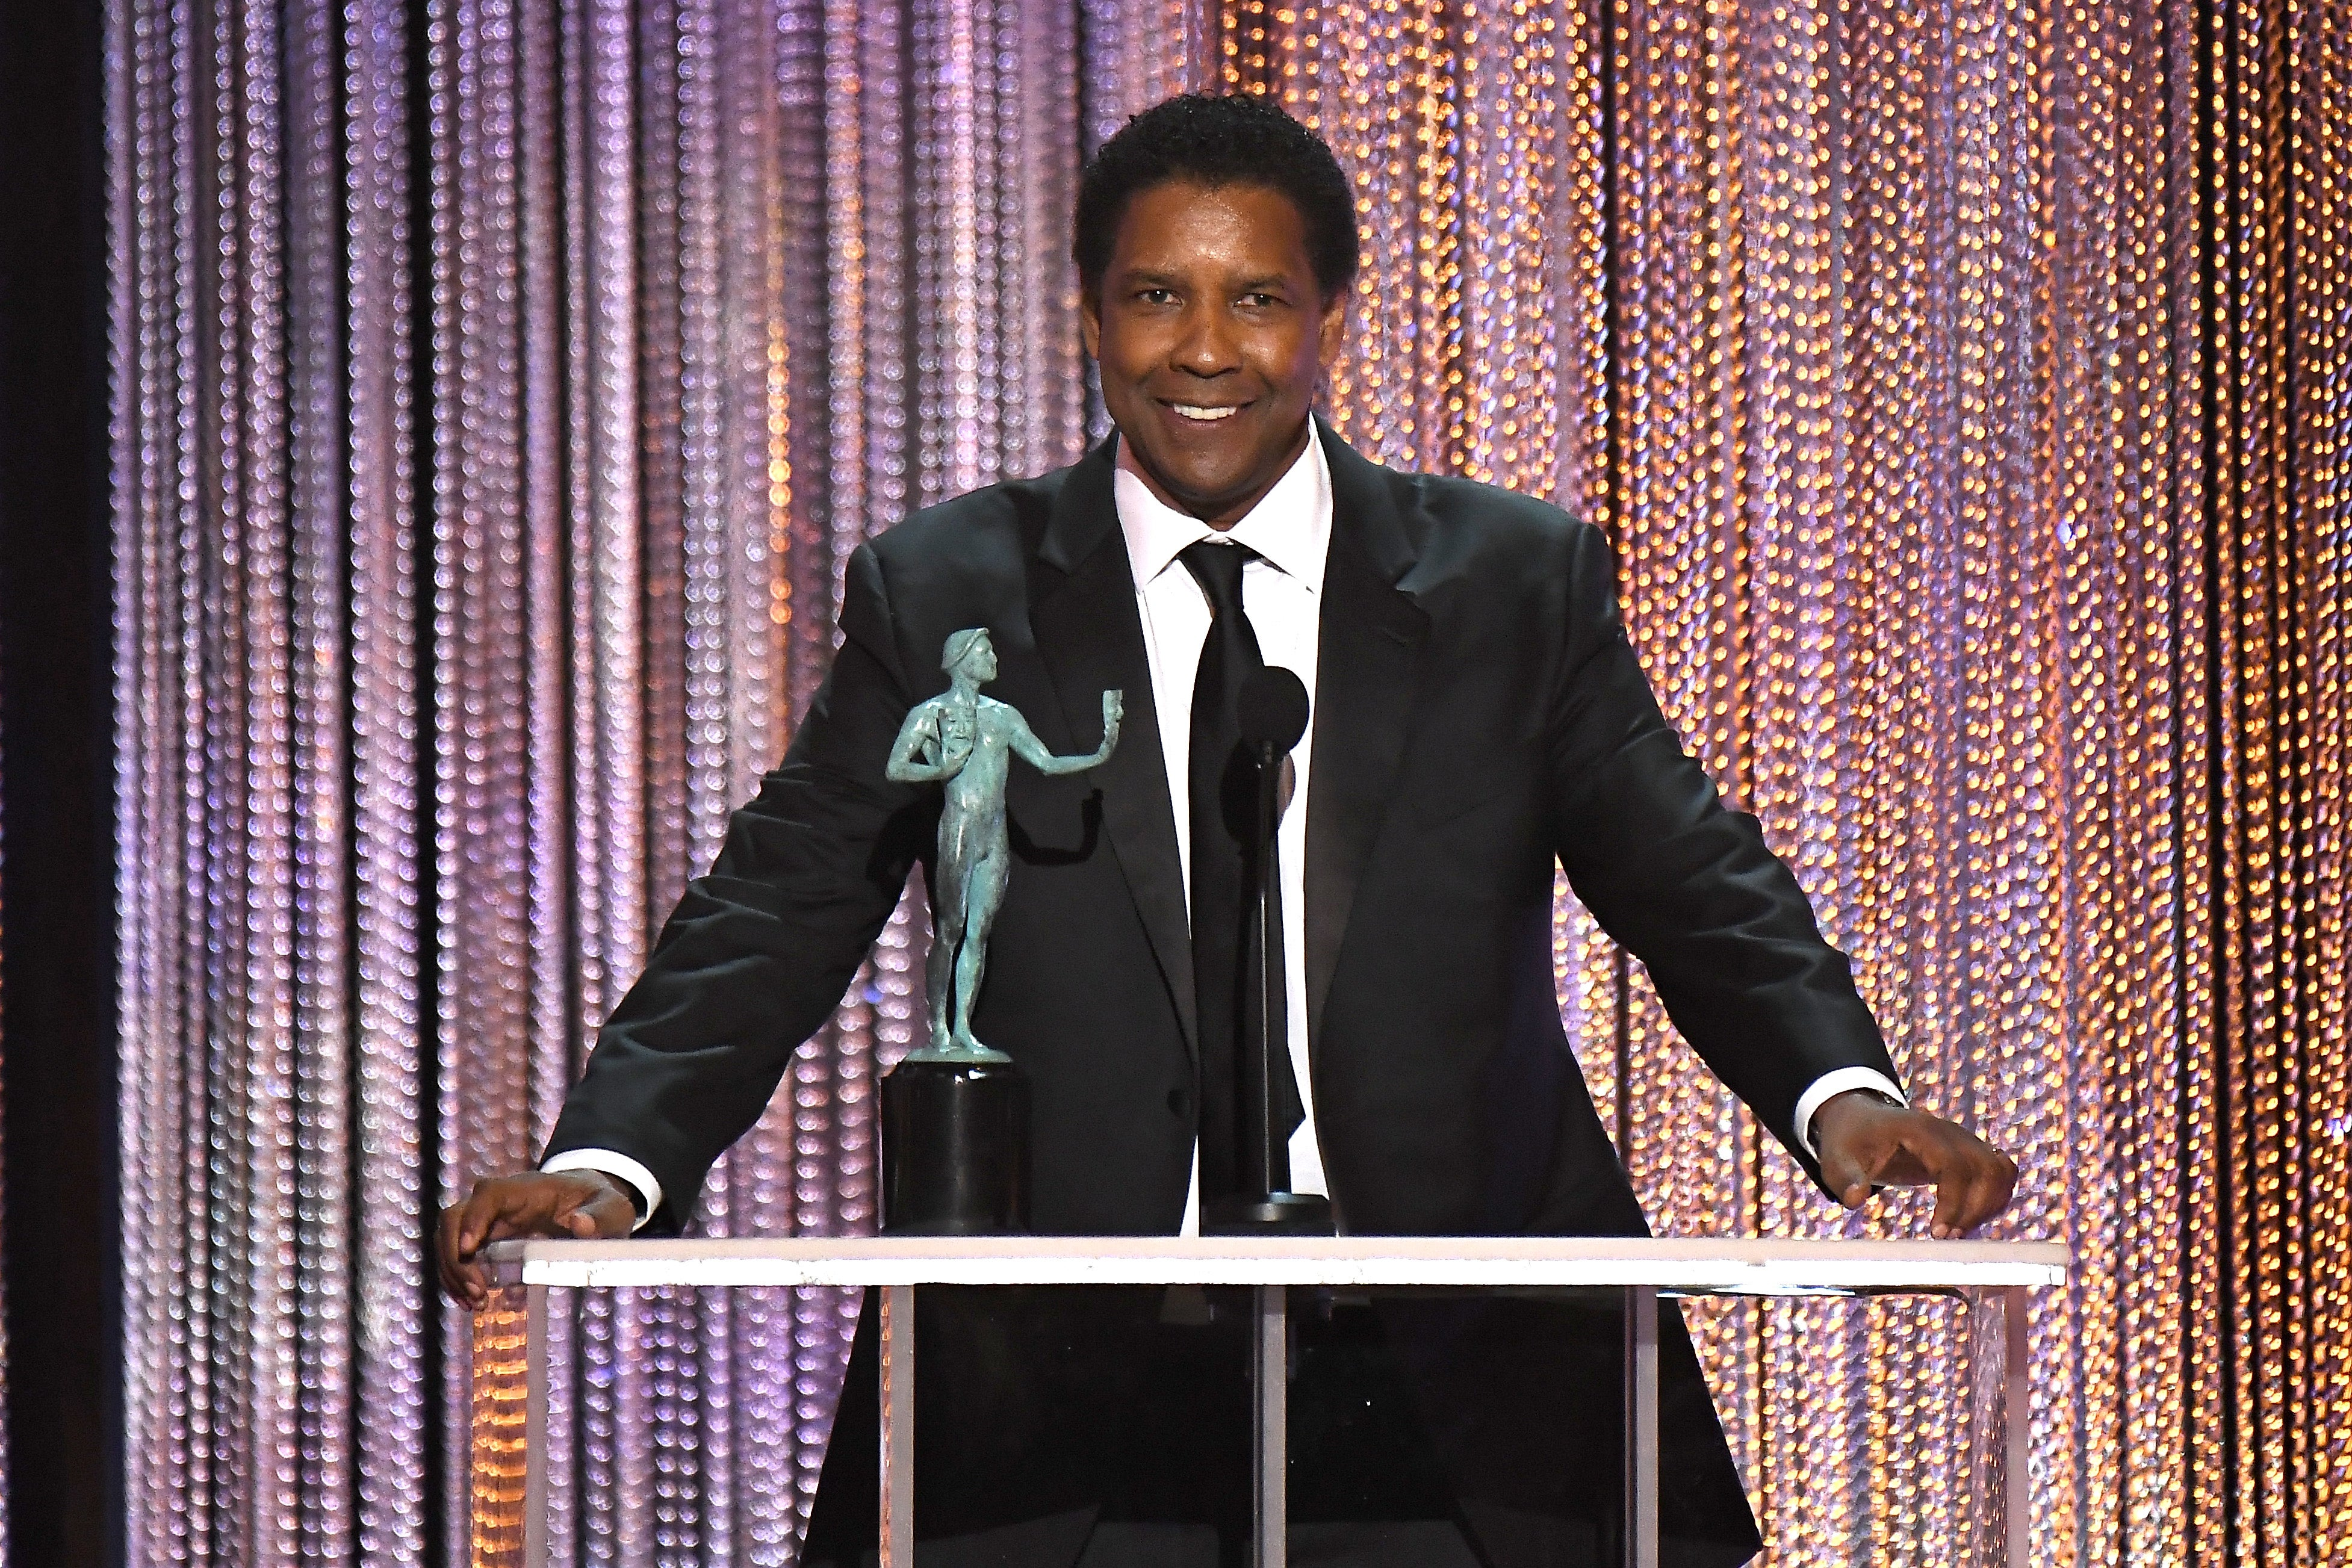 Denzel Washington (Finally!) Wins His First SAG Award For His Powerful Performance In 'Fences'